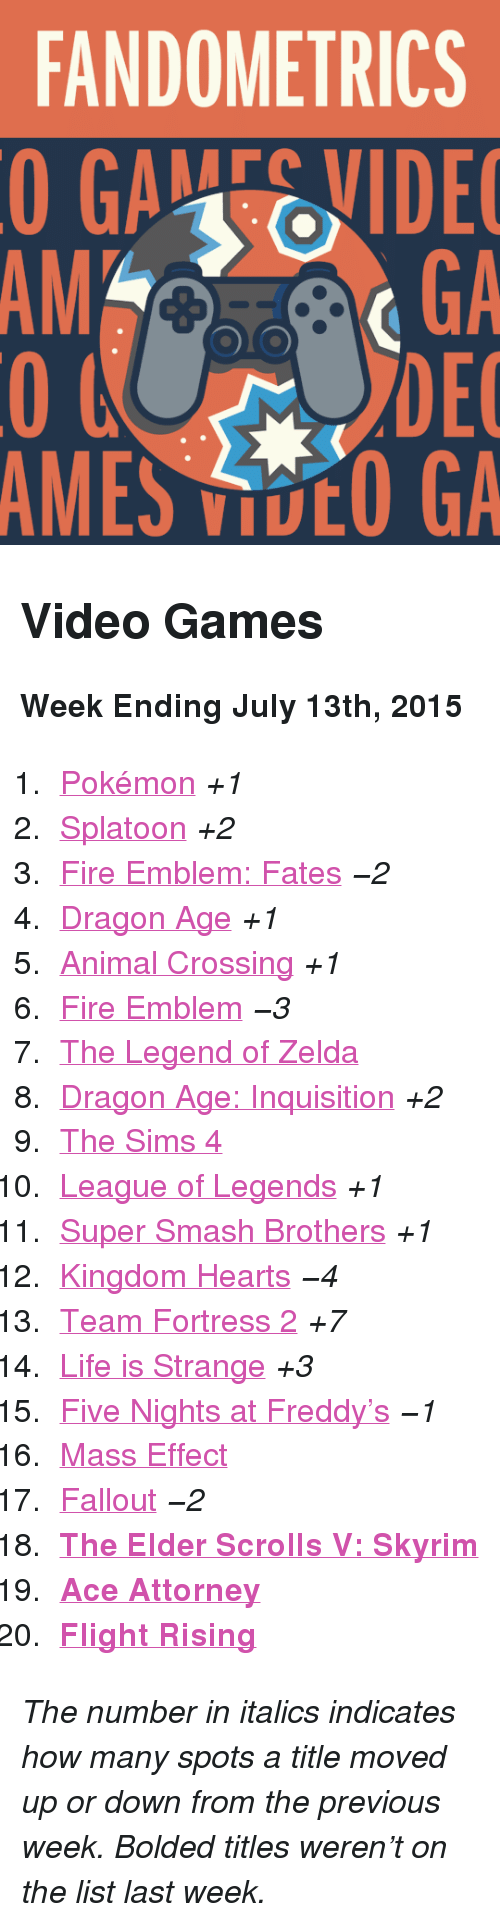 "Five Nights: FANDOMETRICS  GAEVIDE  GA  DEC  AMES VOO GA  AM <h2>Video Games</h2><p><b>Week Ending July 13th, 2015</b></p><ol><li><a href=""http://www.tumblr.com/search/pokemon"">Pokémon</a> <i>+1</i></li>  <li><a href=""http://www.tumblr.com/search/splatoon"">Splatoon</a> <i>+2</i></li>  <li><a href=""http://www.tumblr.com/search/fire%20emblem%20fates"">Fire Emblem: Fates</a> <i>−2</i></li>  <li><a href=""http://www.tumblr.com/search/dragon%20age"">Dragon Age</a> <i>+1</i></li>  <li><a href=""http://www.tumblr.com/search/acnl"">Animal Crossing</a> <i>+1</i></li>  <li><a href=""http://www.tumblr.com/search/fire%20emblem"">Fire Emblem</a> <i>−3</i></li>  <li><a href=""http://www.tumblr.com/search/legend%20of%20zelda"">The Legend of Zelda</a> </li>  <li><a href=""http://www.tumblr.com/search/dragon%20age%20inquisition"">Dragon Age: Inquisition</a> <i>+2</i></li>  <li><a href=""http://www.tumblr.com/search/sims%204"">The Sims 4</a></li>  <li><a href=""http://www.tumblr.com/search/league%20of%20legends"">League of Legends</a> <i>+1</i></li>  <li><a href=""http://www.tumblr.com/search/super%20smash%20bros"">Super Smash Brothers</a> <i>+1</i></li>  <li><a href=""http://www.tumblr.com/search/kingdom%20hearts"">Kingdom Hearts</a> <i>−4</i></li>  <li><a href=""http://www.tumblr.com/search/tf2"">Team Fortress 2</a> <i>+7</i></li>  <li><a href=""http://www.tumblr.com/search/life%20is%20strange"">Life is Strange</a> <i>+3</i></li>  <li><a href=""http://www.tumblr.com/search/five%20nights%20at%20freddy's"">Five Nights at Freddy&rsquo;s</a> <i>−1</i></li>  <li><a href=""http://www.tumblr.com/search/mass%20effect"">Mass Effect</a></li>  <li><a href=""http://www.tumblr.com/search/fallout"">Fallout</a> <i>−2</i></li>  <li><a href=""http://www.tumblr.com/search/skyrim""><b>The Elder Scrolls V: Skyrim</b></a></li>  <li><a href=""http://www.tumblr.com/search/ace%20attorney""><b>Ace Attorney</b></a></li>  <li><a href=""http://www.tumblr.com/search/flight%20rising""><b>Flight Rising</b></a></li></ol><p><i>The number in italics indicates how many spots a title moved up or down from the previous week. Bolded titles weren't on the list last week.</i></p>"